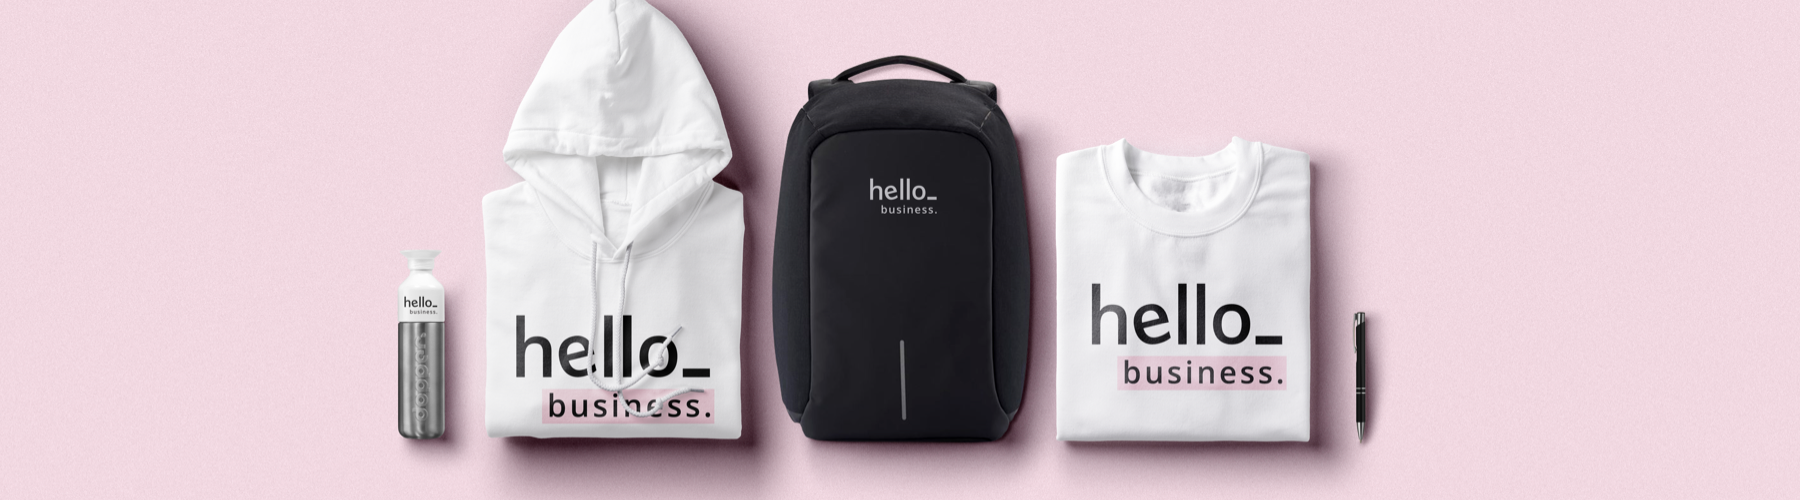 3 ideas to stand out with personalised products